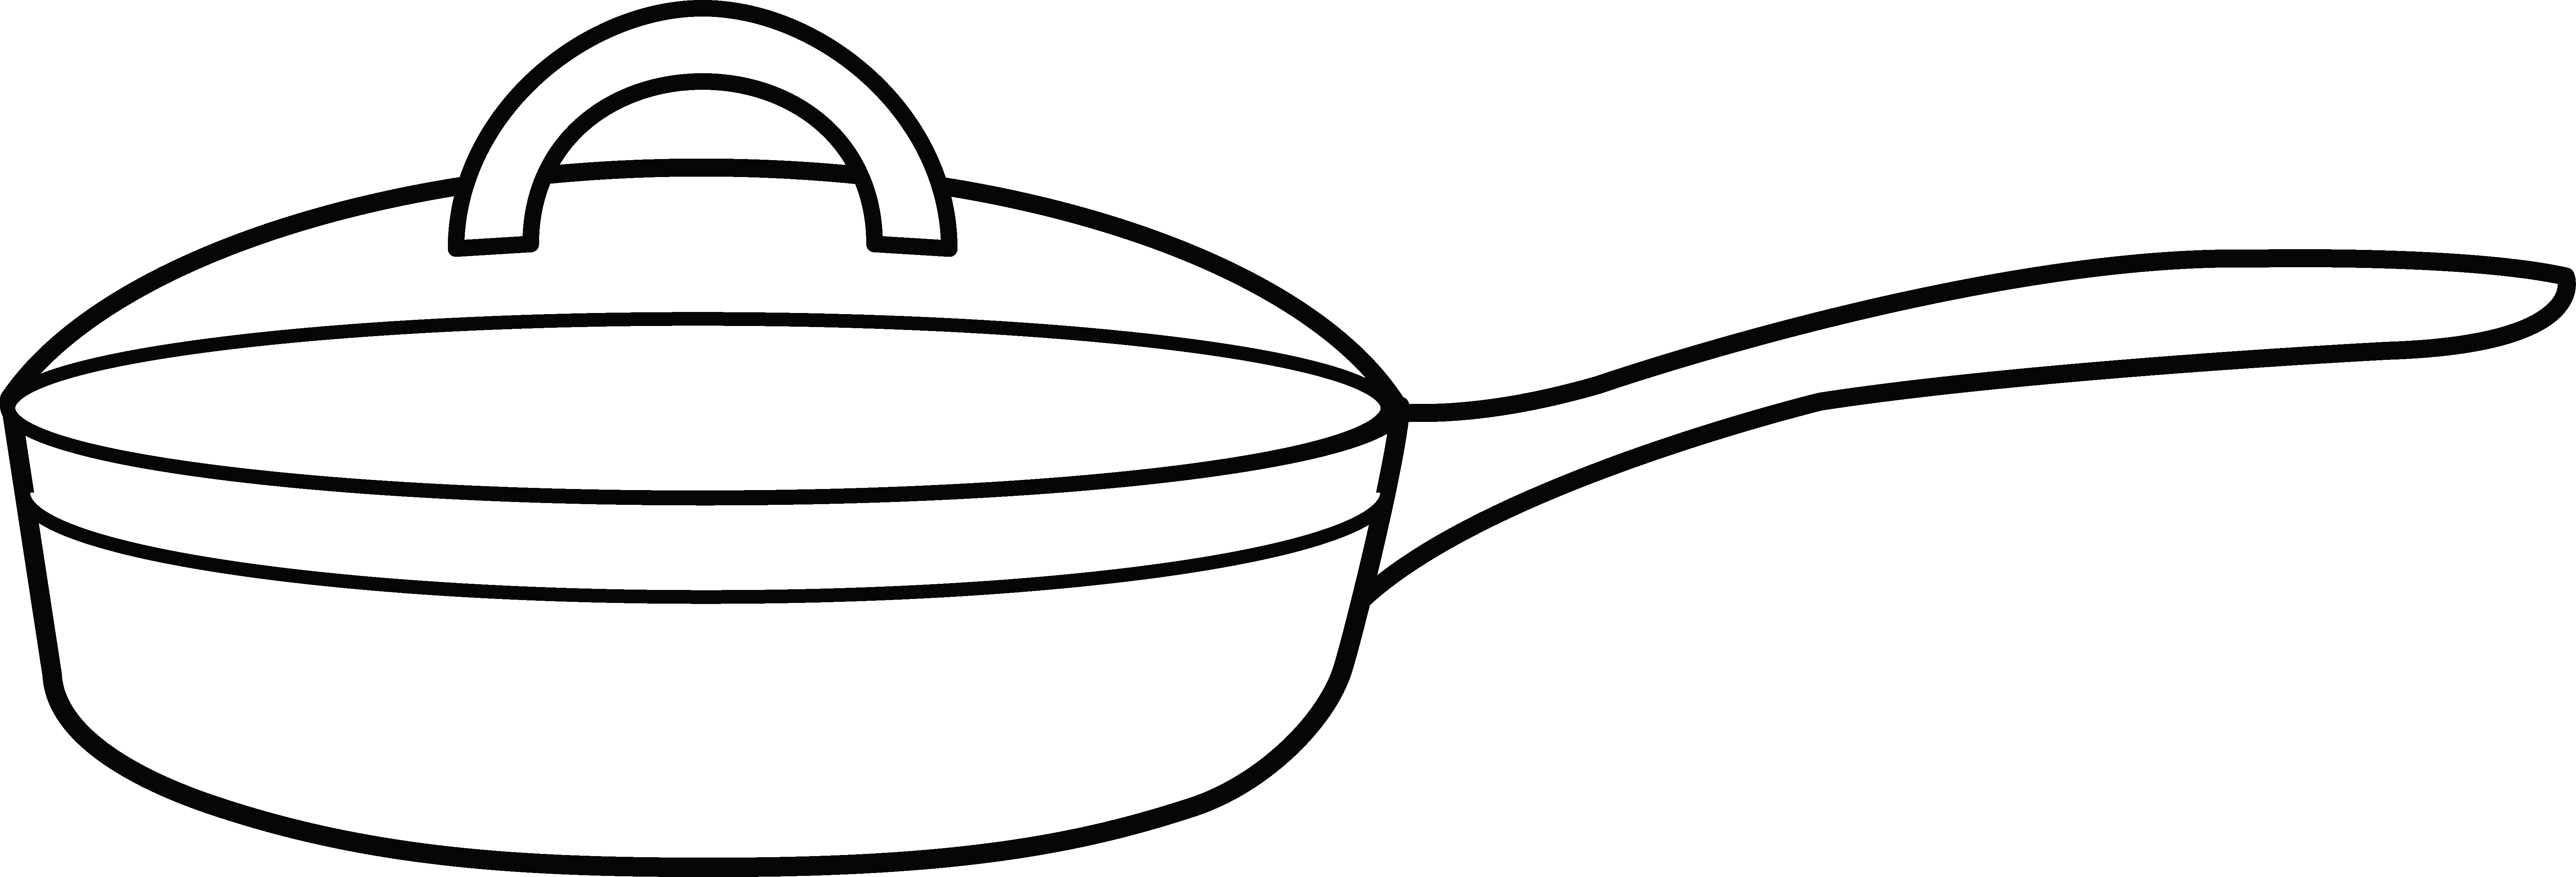 Frying Pan Coloring Page.